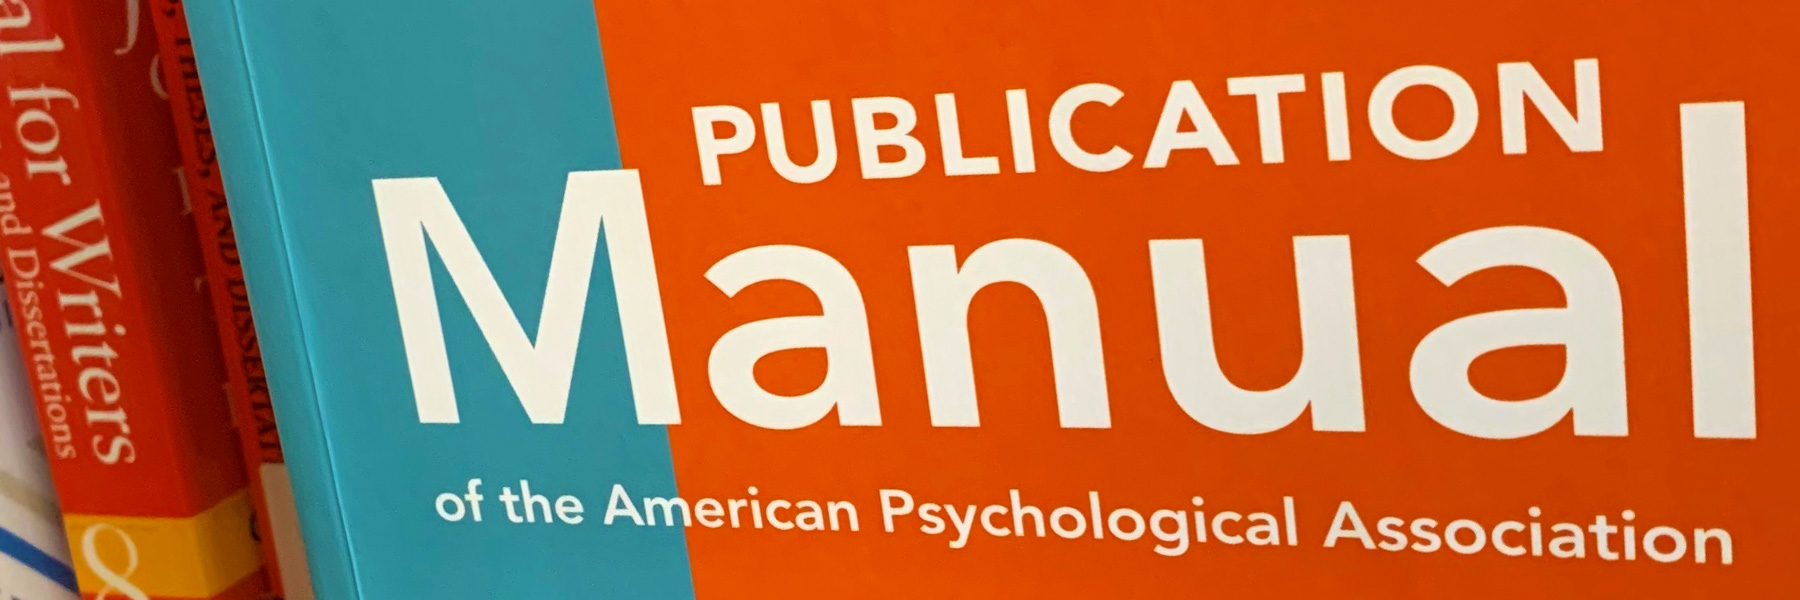 APA Manual 7th | Searching and Referencing Course | Dr Steven A Martin | Source APA (2020)